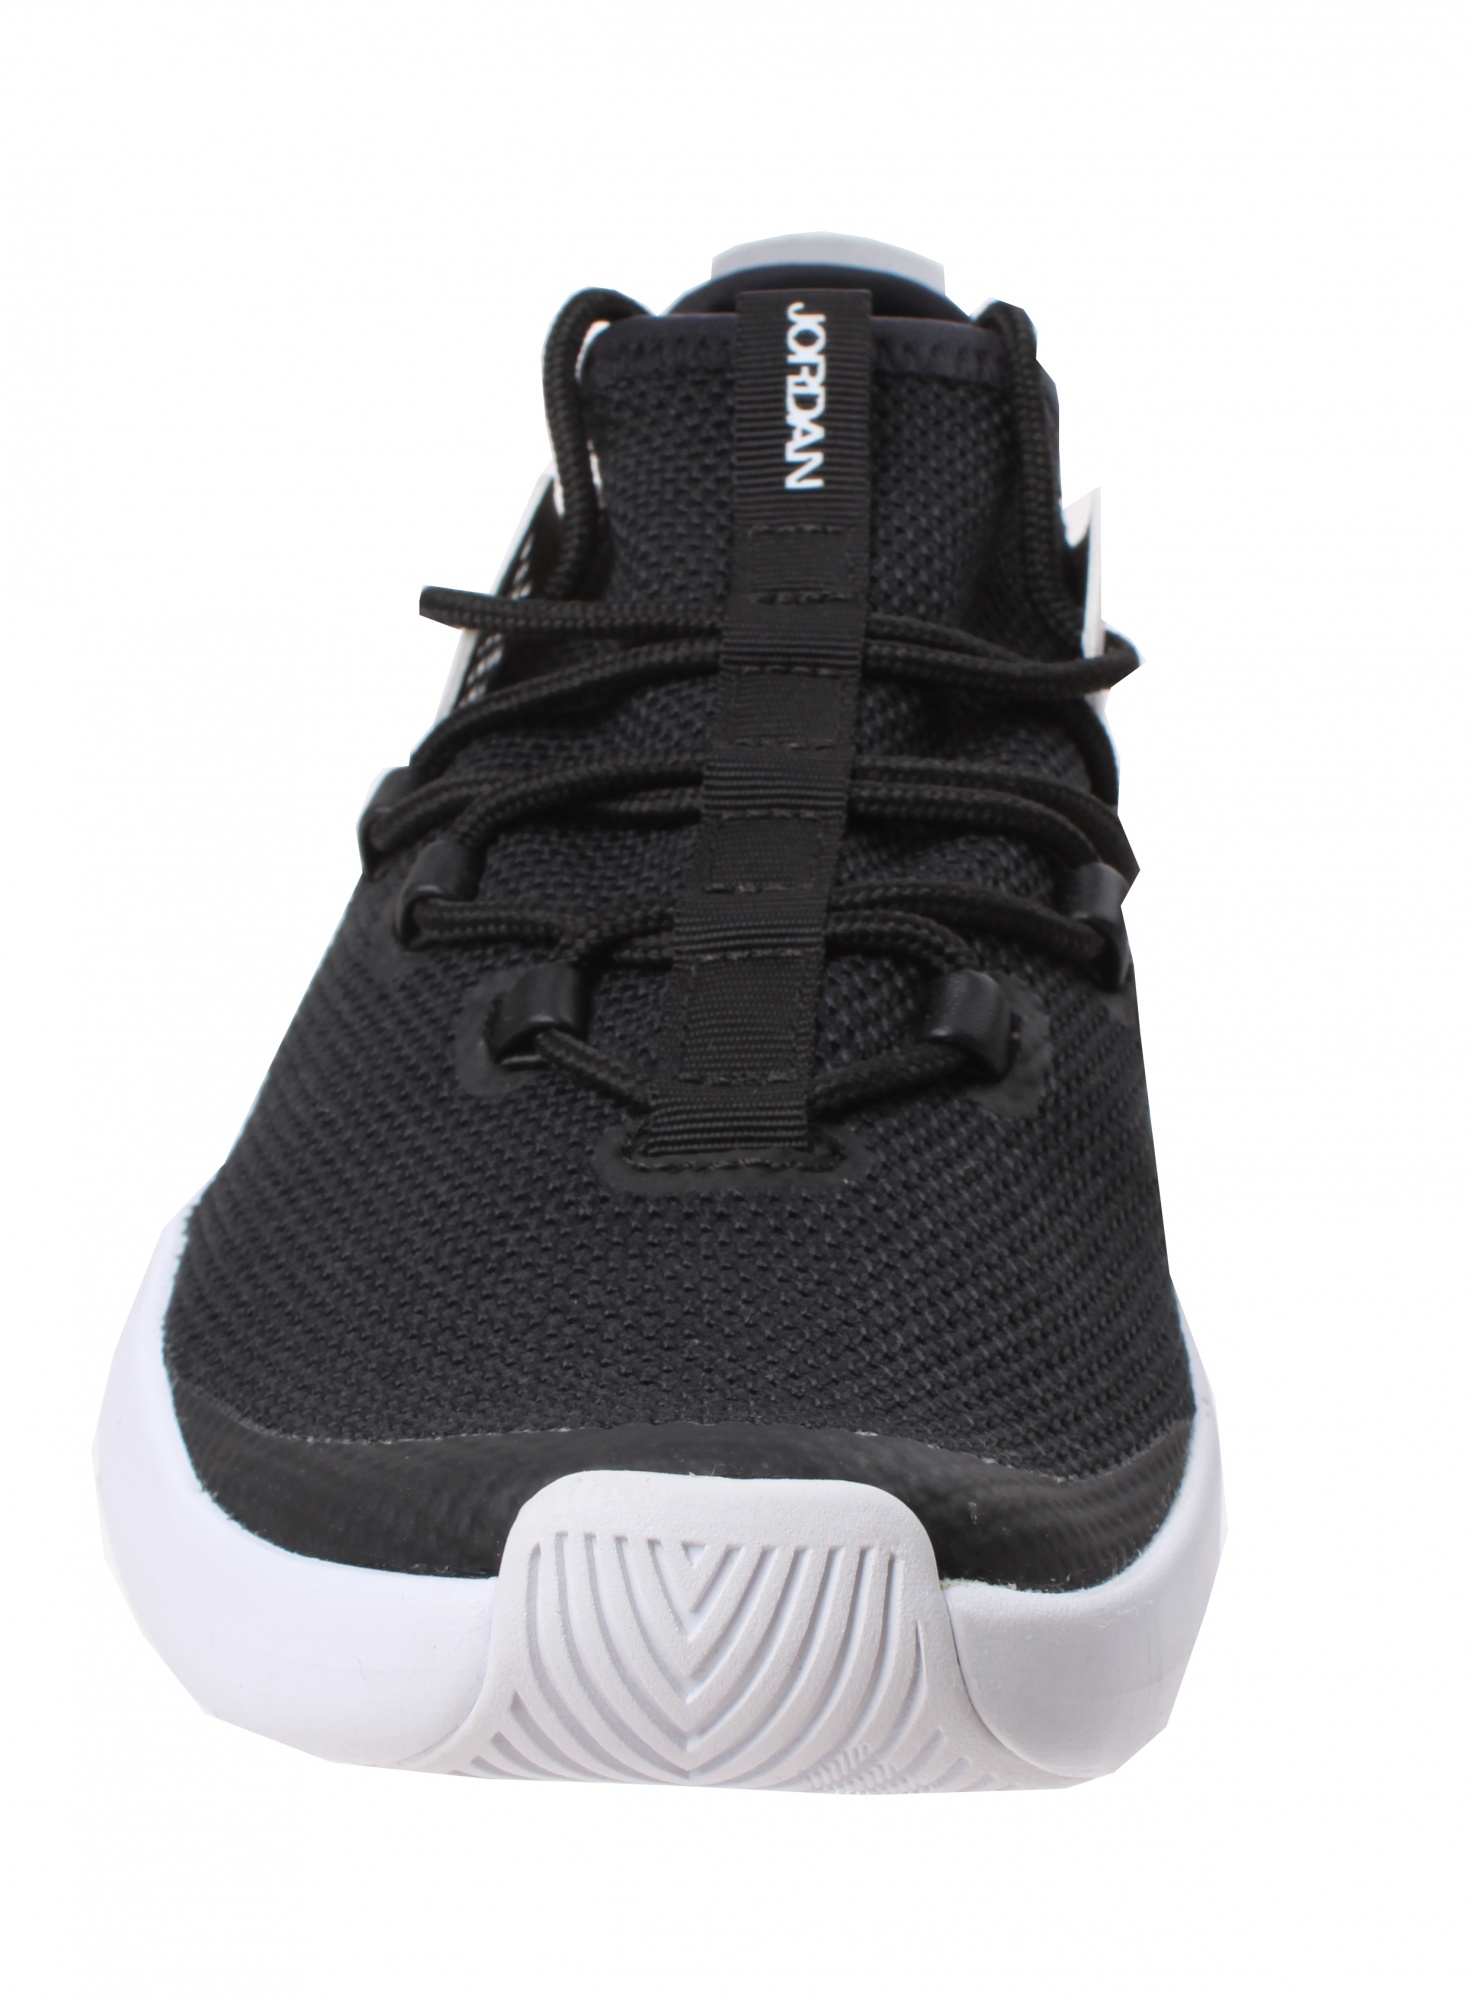 sports shoes 53f98 cbb3b Nike Sneakers Jordan Eclipse Express Männer schwarz   weiß ...